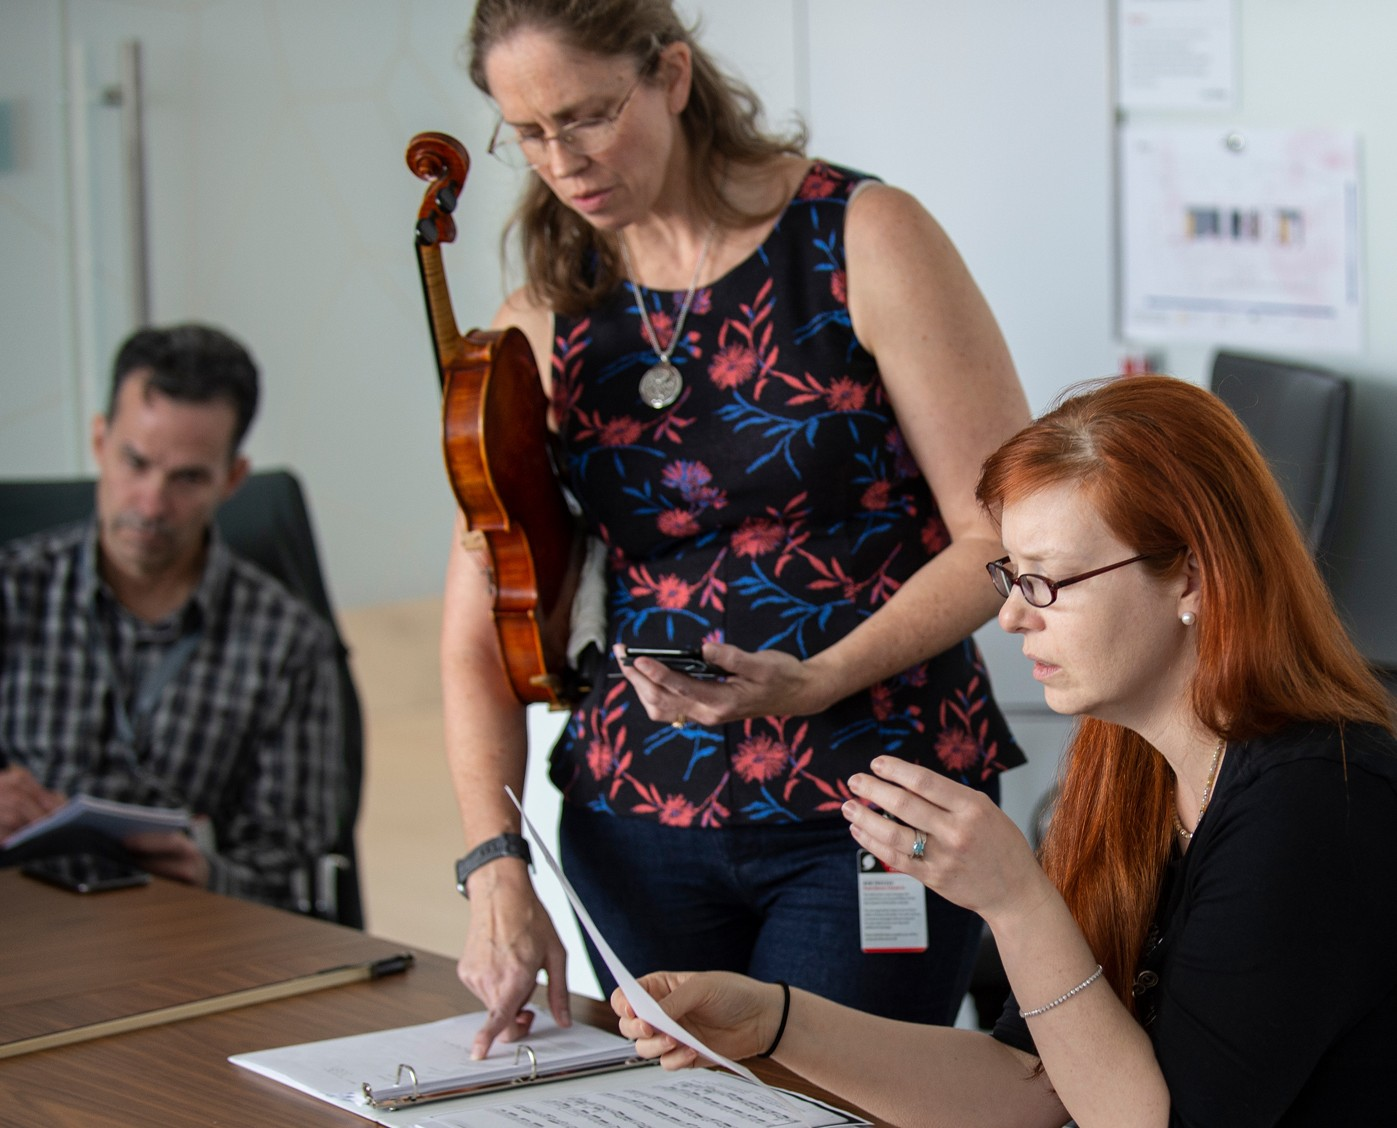 Stephanie standing holding violin, pointing at sheet music, while Bret and Kat are seated at conference table.